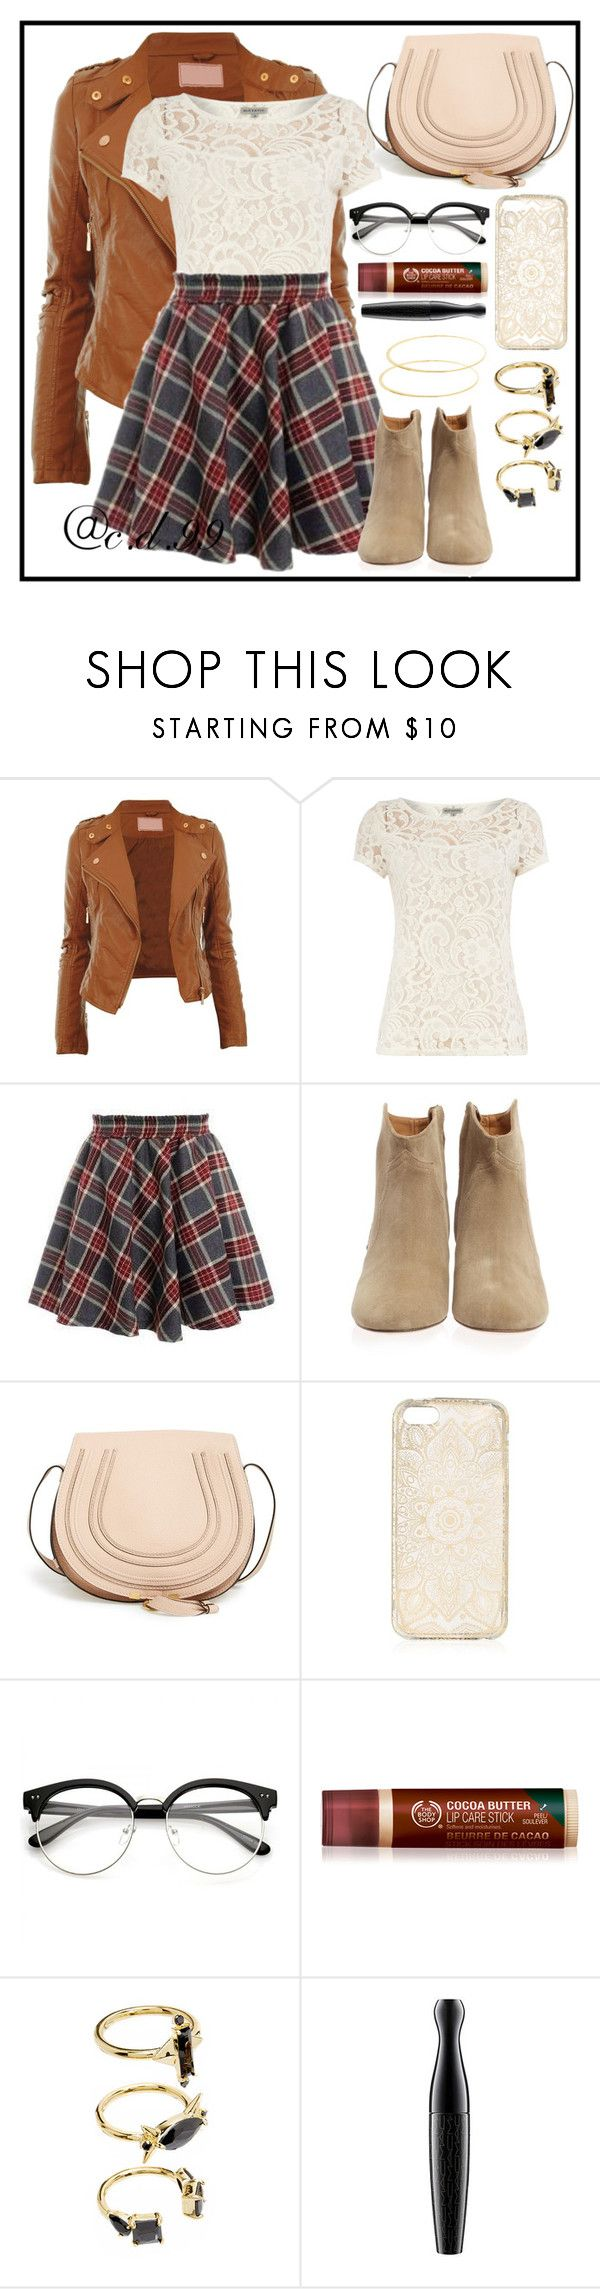 """Untitled #510"" by cutiedonut99 ❤ liked on Polyvore featuring Alice & You, Isabel Marant, Chloé, Noir Jewelry, MAC Cosmetics and Lana"